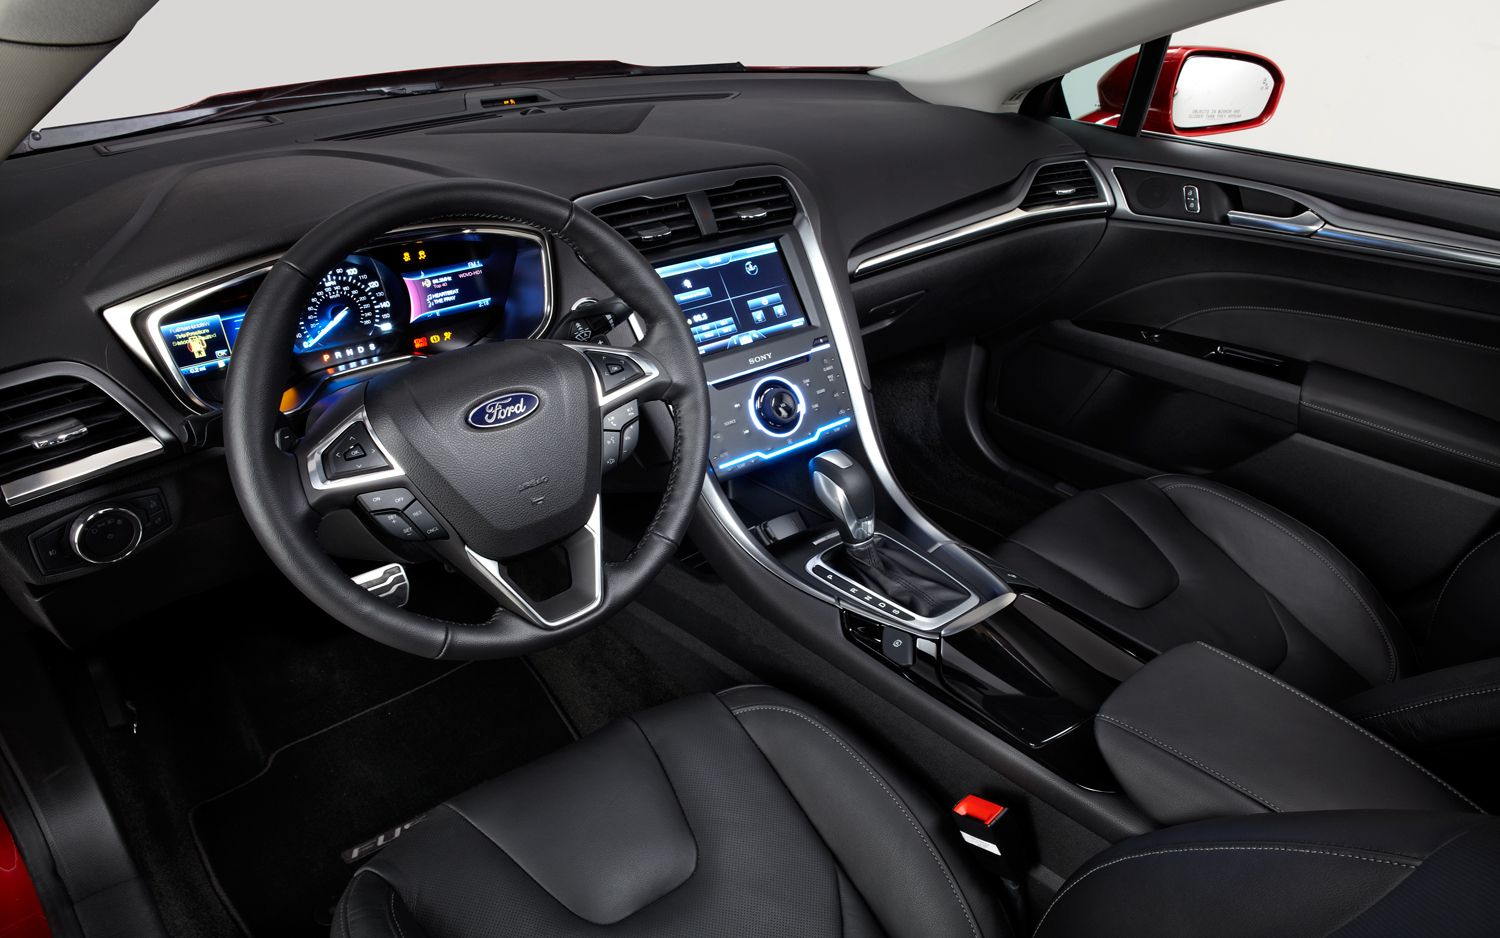 2013 ford fusion interior   ford fusion   pinterest   ford fusion